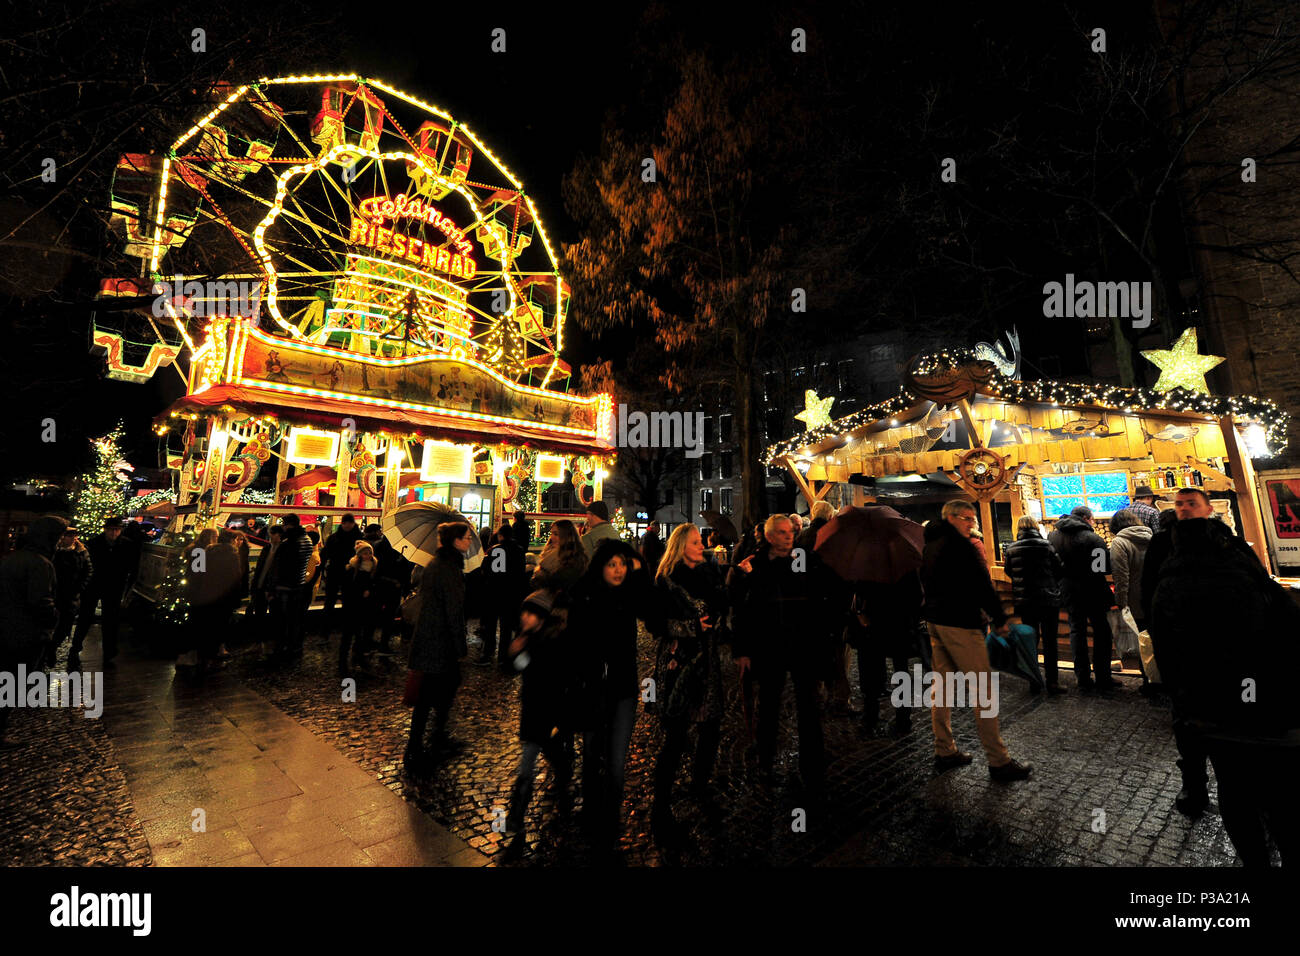 Bielefeld, Germany, Rummel with ferris wheel at the Christmas market - Stock Image